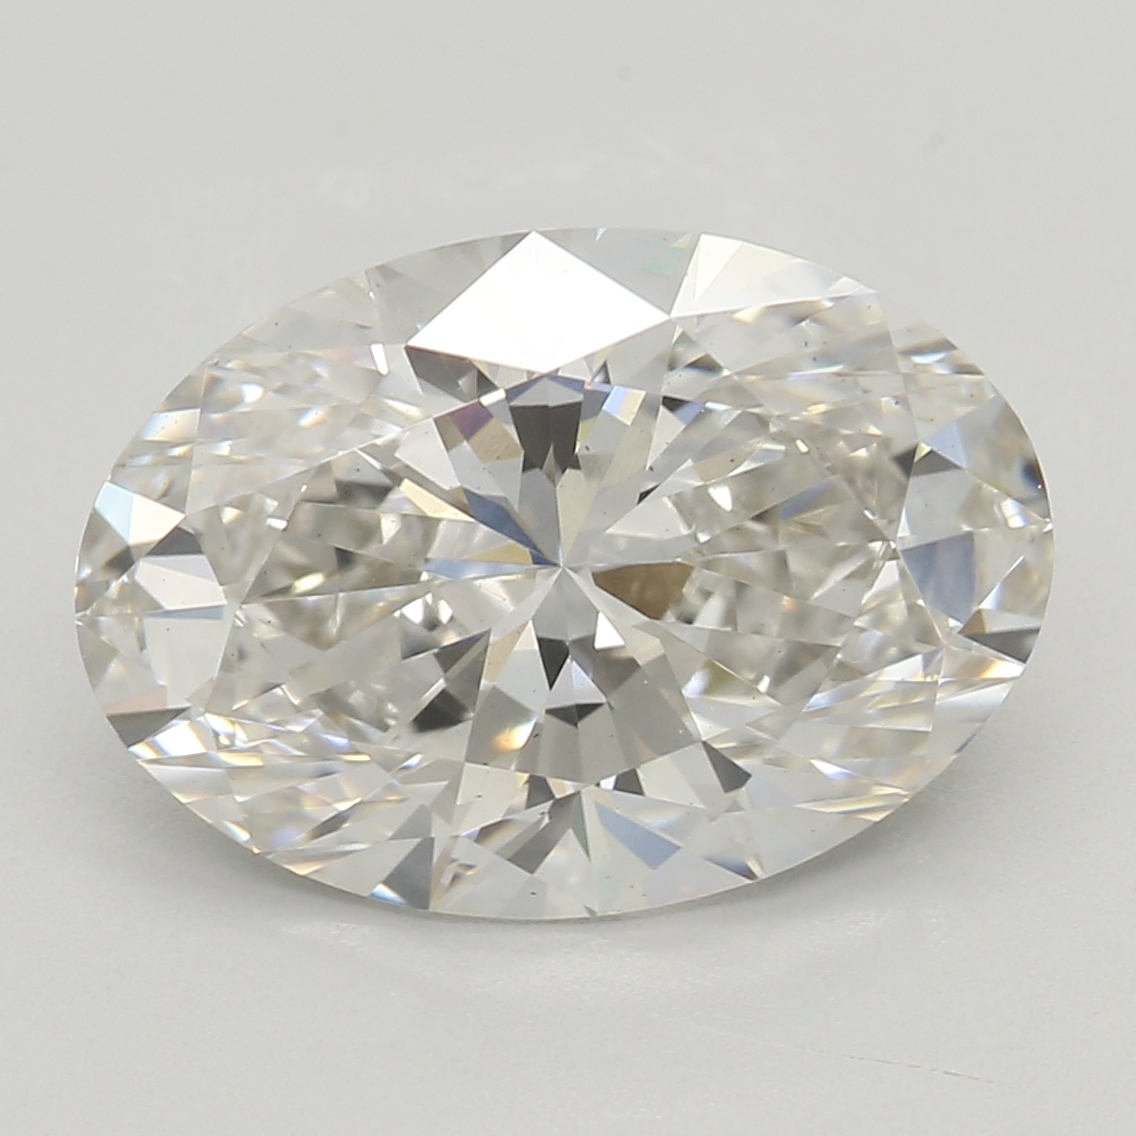 2.48 Carat H-VS2 Excellent Oval Diamond